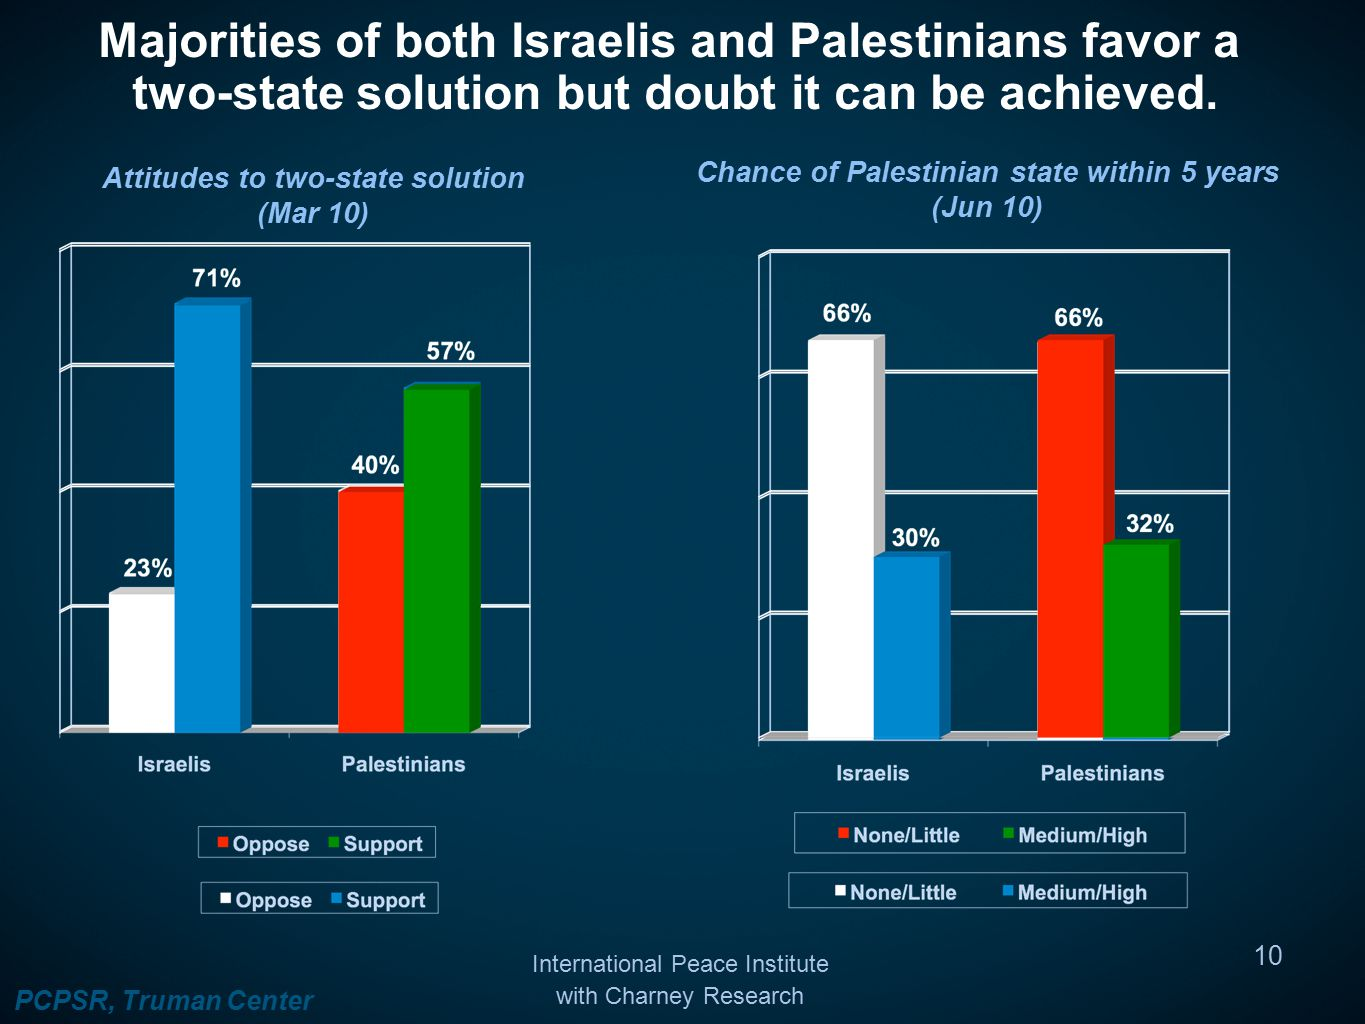 Majorities of both Israelis and Palestinians favor a two-state solution but doubt it can be achieved.